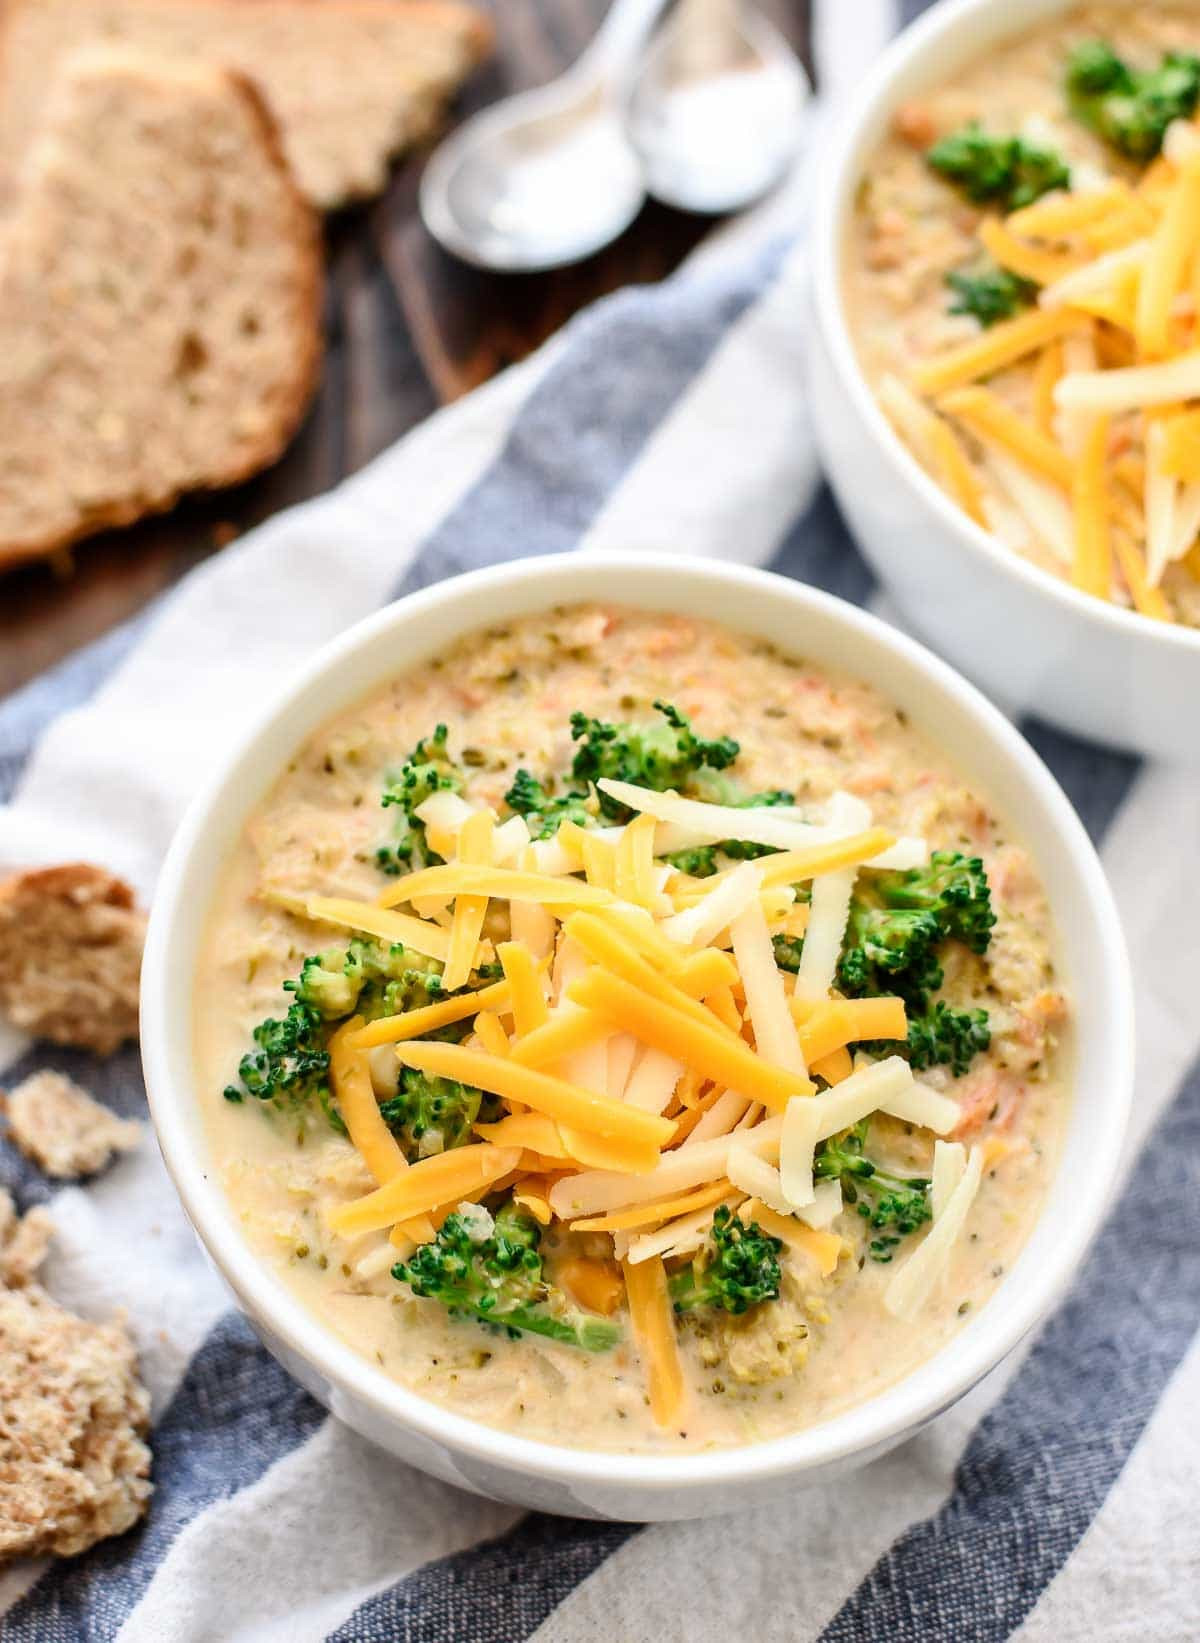 Crockpot Soups Healthy  Slow Cooker Broccoli and Cheese Soup